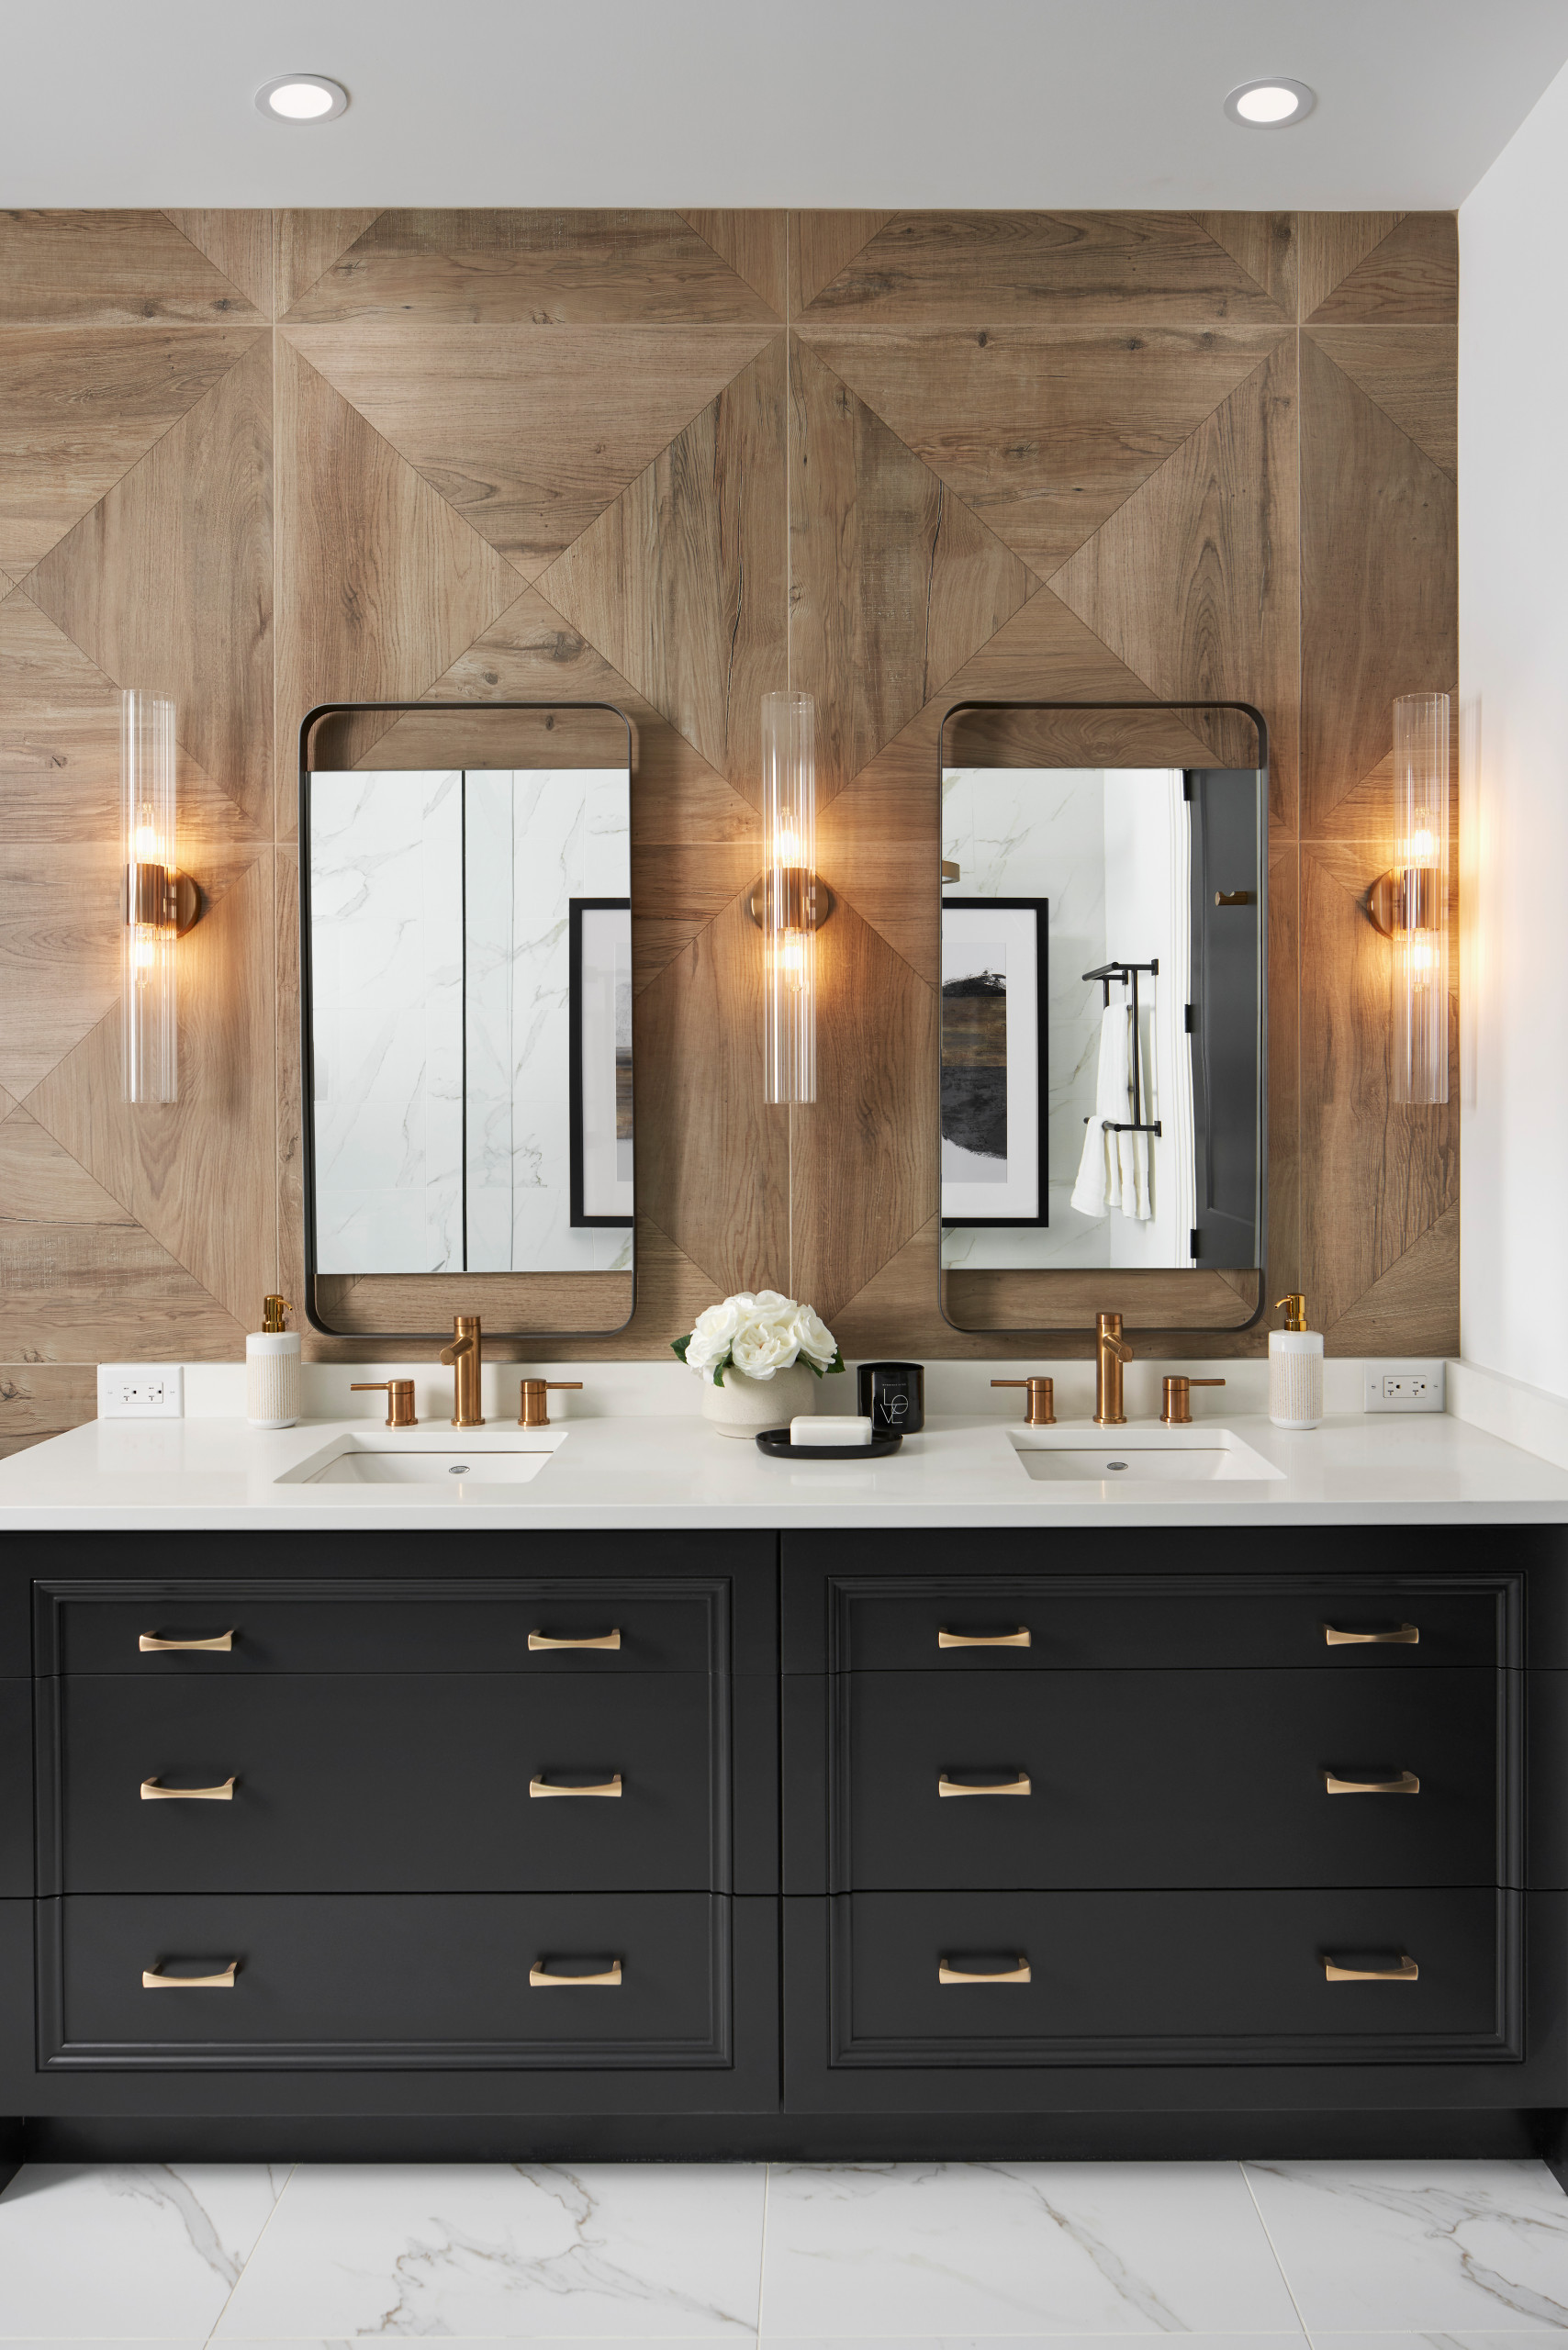 75 Beautiful Wood Look Tile Bathroom Pictures Ideas December 2020 Houzz